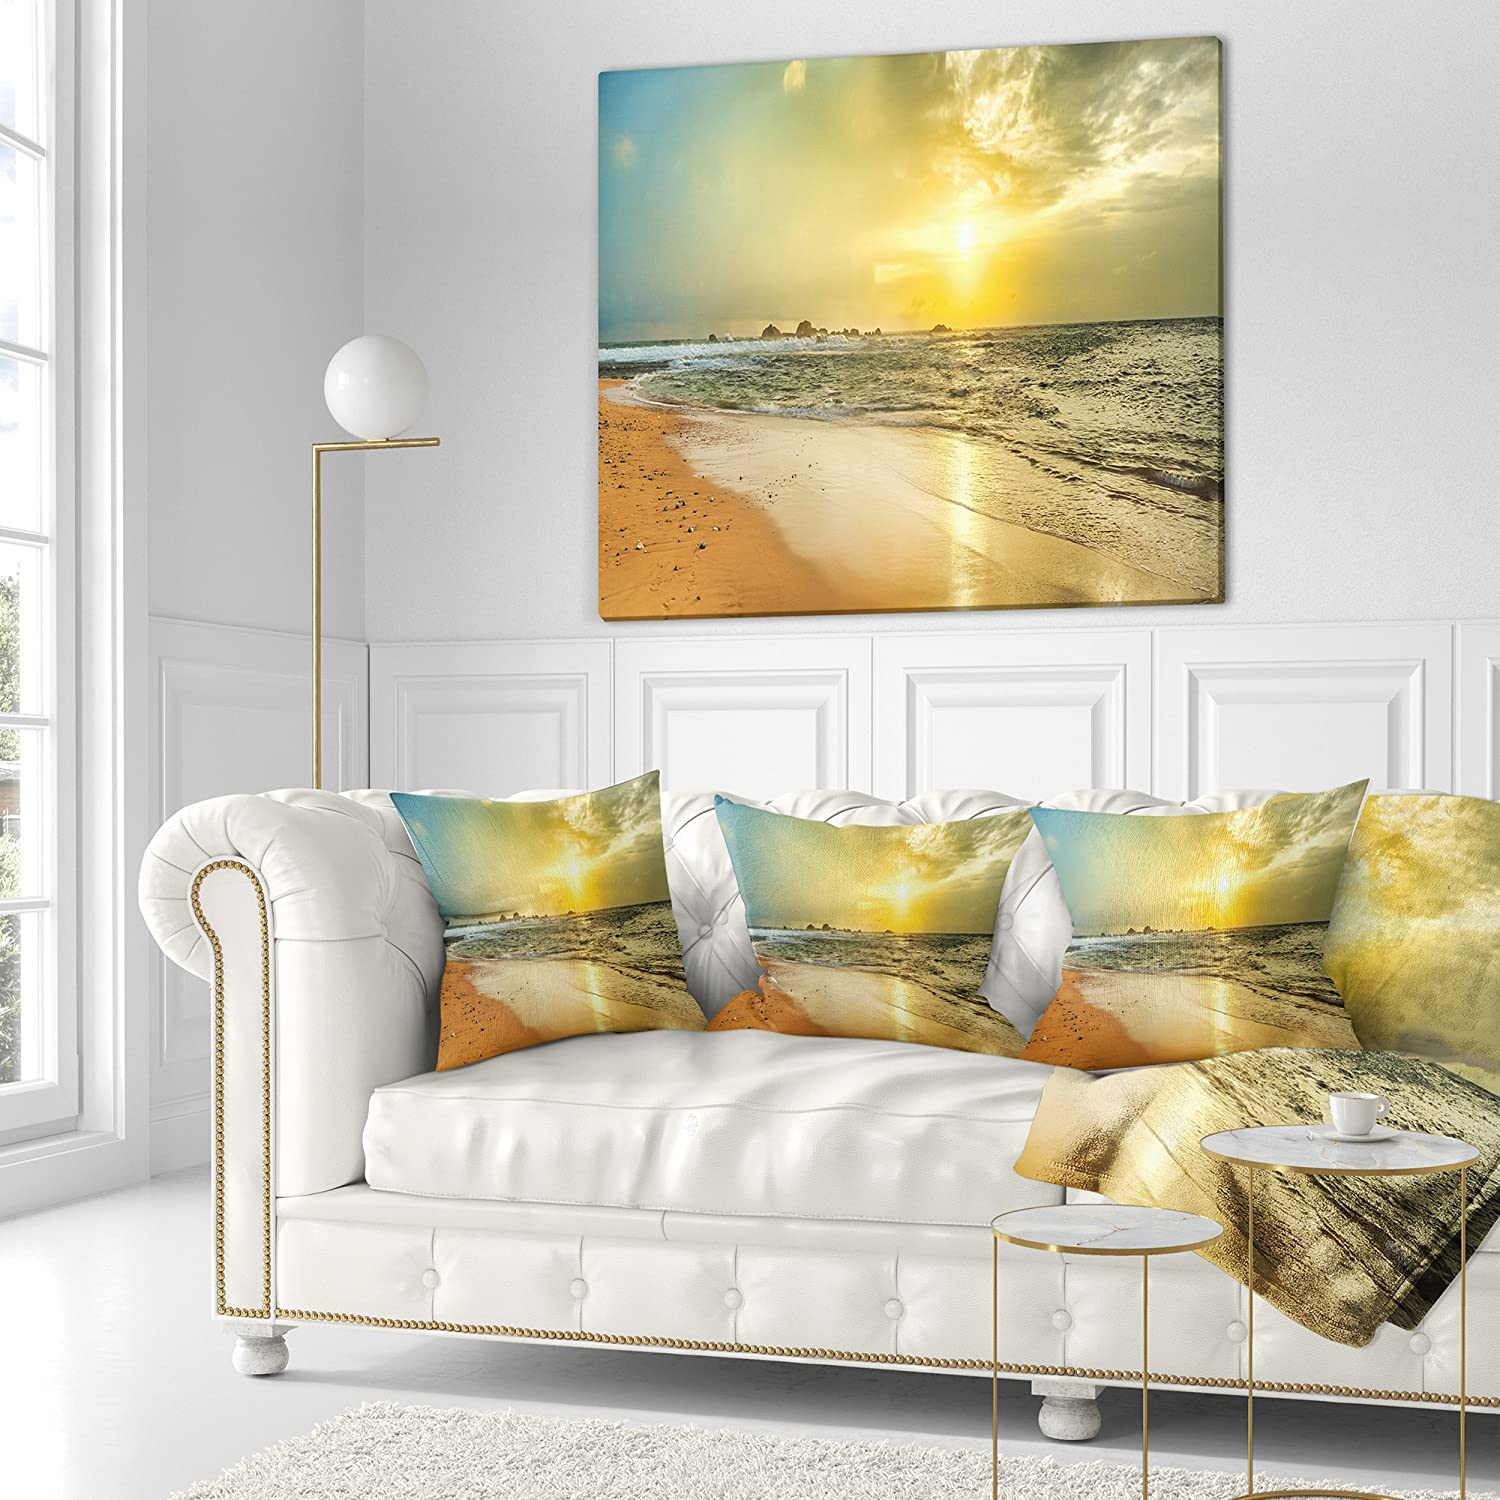 Pillow Insert 26 in x 26 in Designart CU11565-26-26 Bright Yellow Sunset Beach Panorama Modern Seascape Throw Cushion Pillow Cover for Living Room Sofa Cushion Cover Printed on Both Side